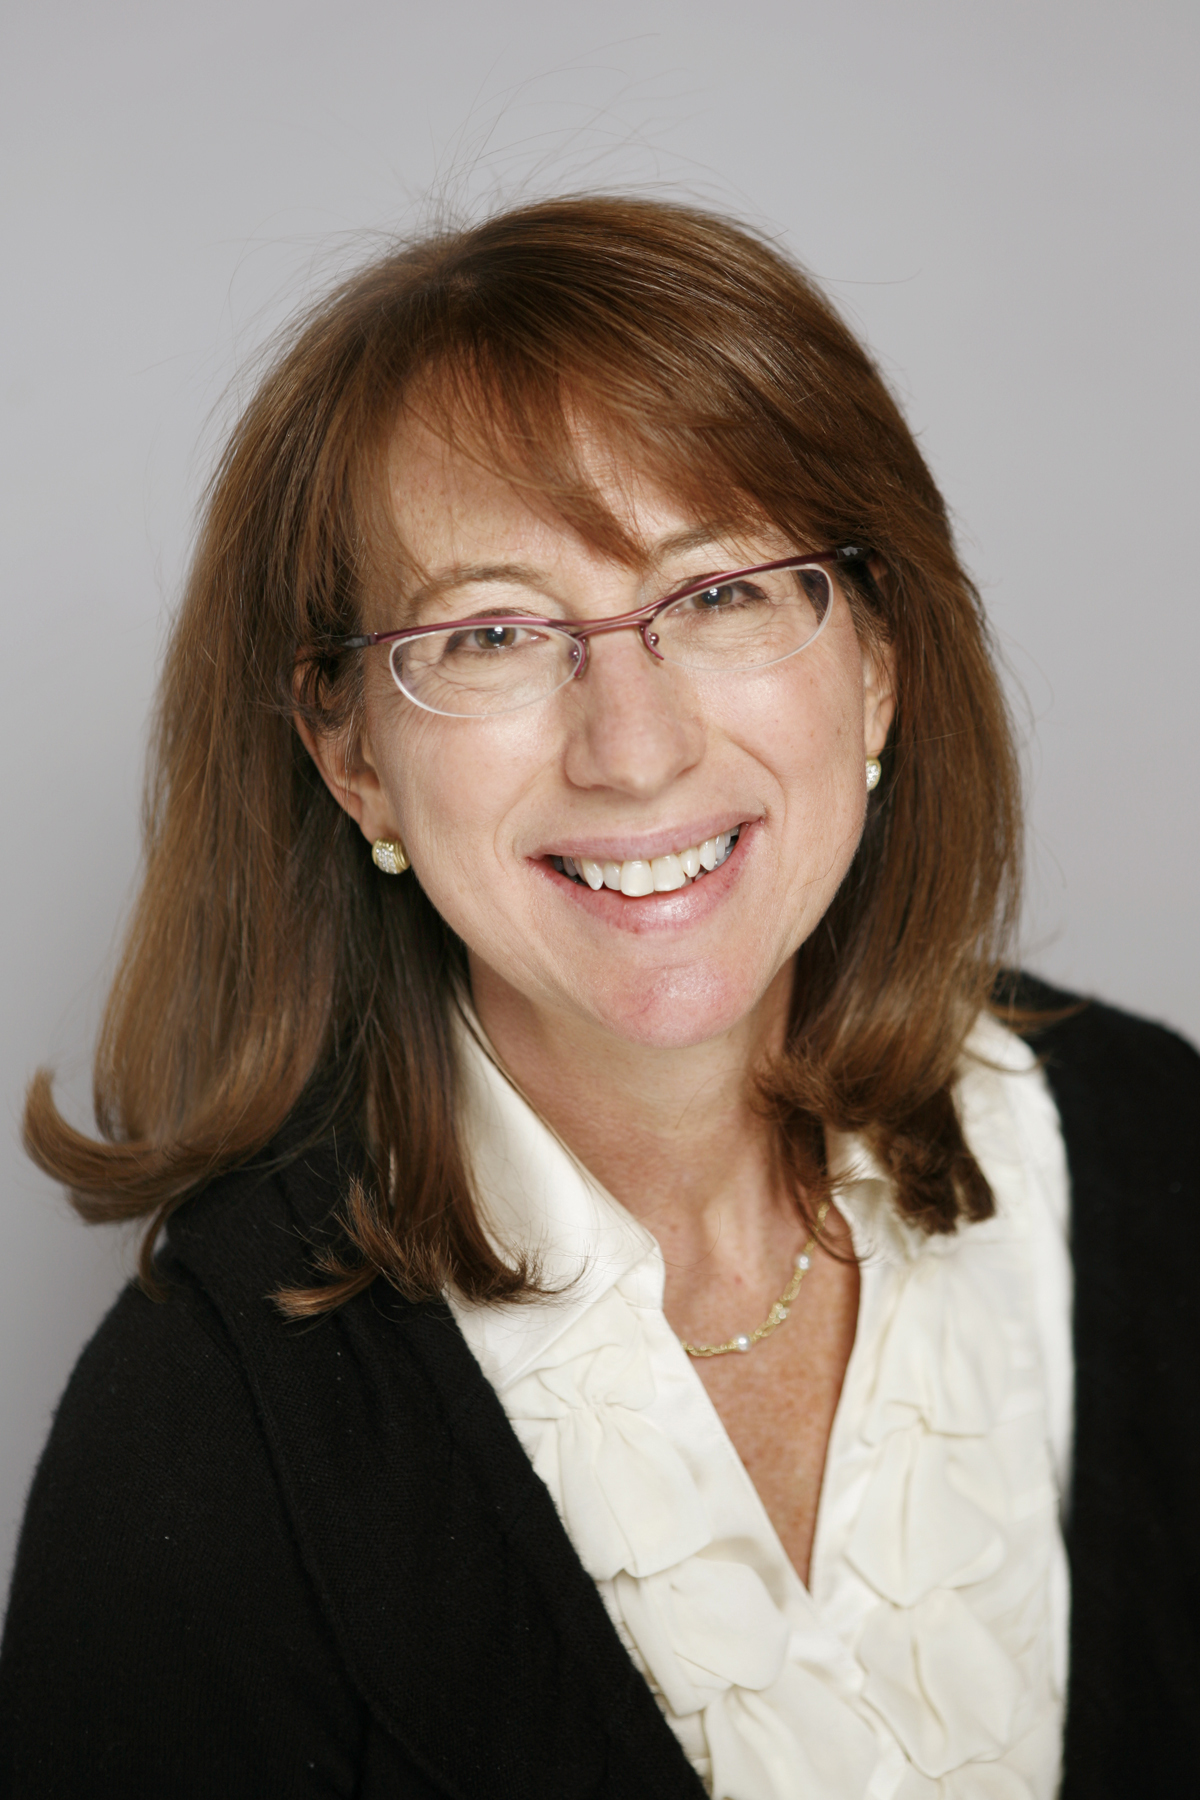 Shira Goodman, Executive Vice President, Global Growth, Staples, has been named President, North American Commercial. (Photo: Business Wire)